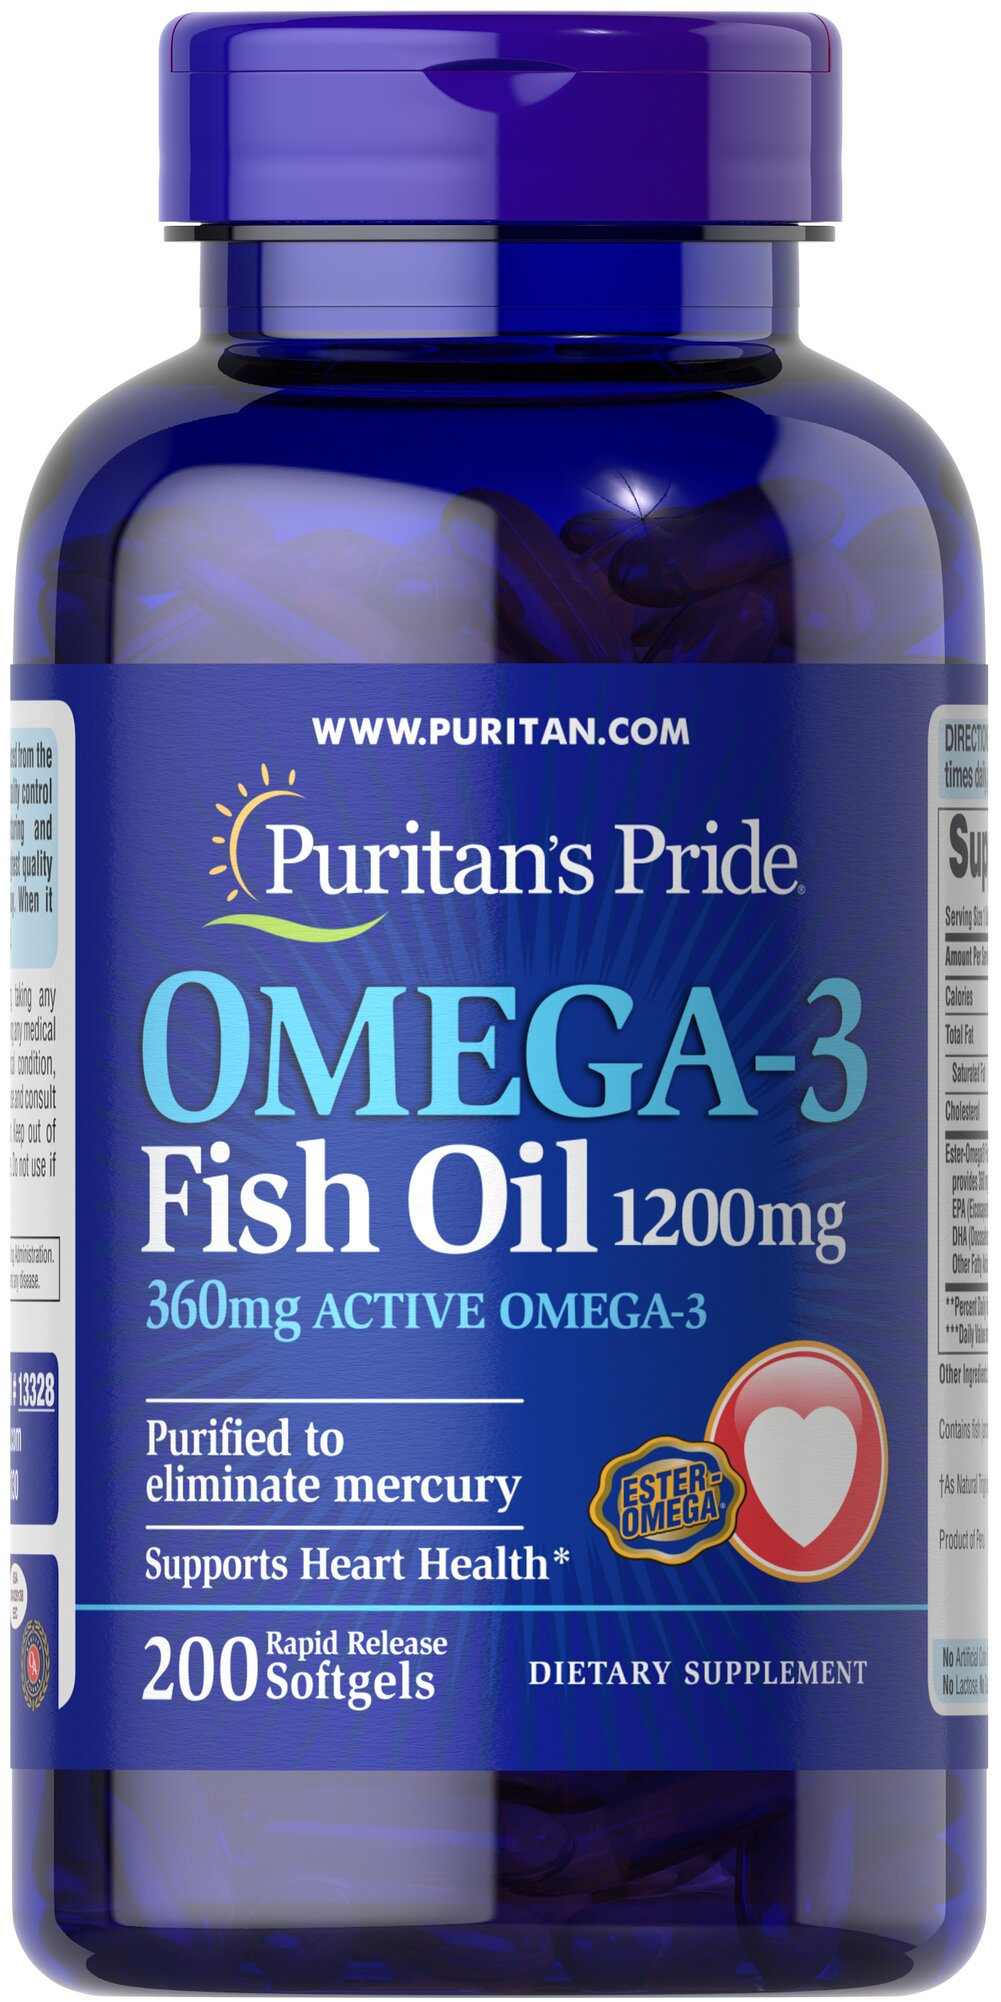 Omega-3 Fish Oil 1200 mg (360 mg Active Omega-3) <p>This Ester-Omega® Fish Oil provides 360mg of total omega-3 fatty acids, comprising of EPA, DHA and other fatty acids. EPA and DHA fatty acids support heart health.** Purified to eliminate mercury. Rapid release softgels.</p> 200 Softgels 1200 mg $17.59